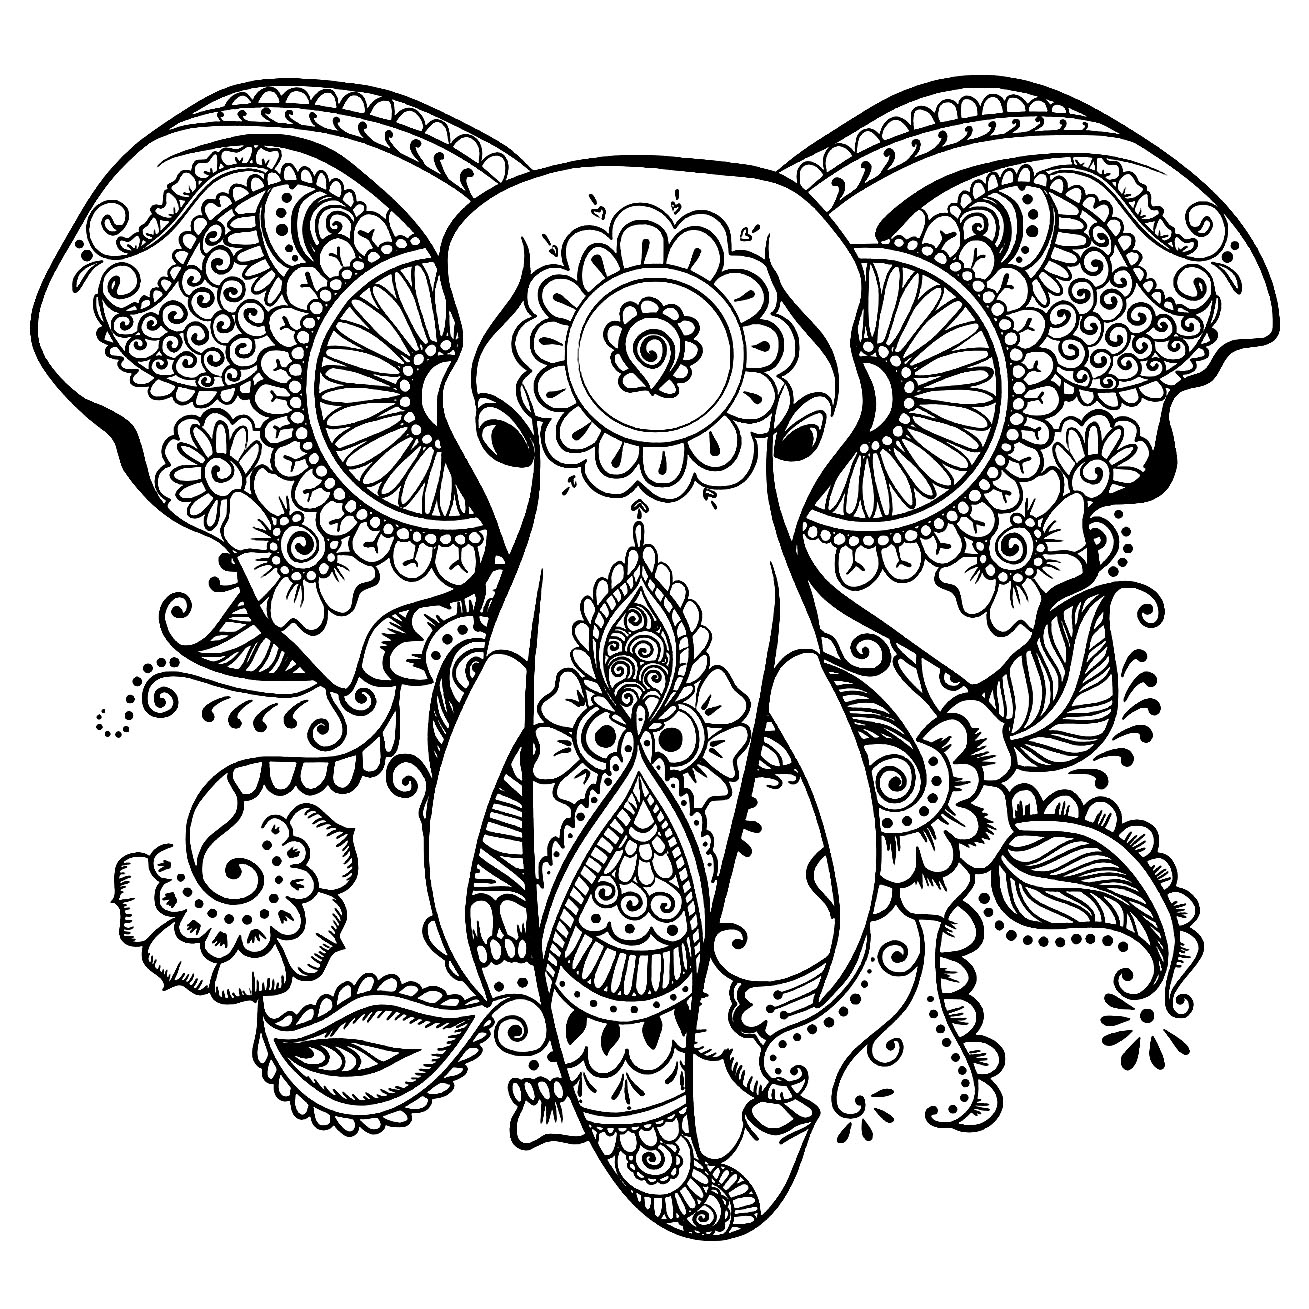 elephant coloring pages elephants free to color for children elephants kids elephant pages coloring